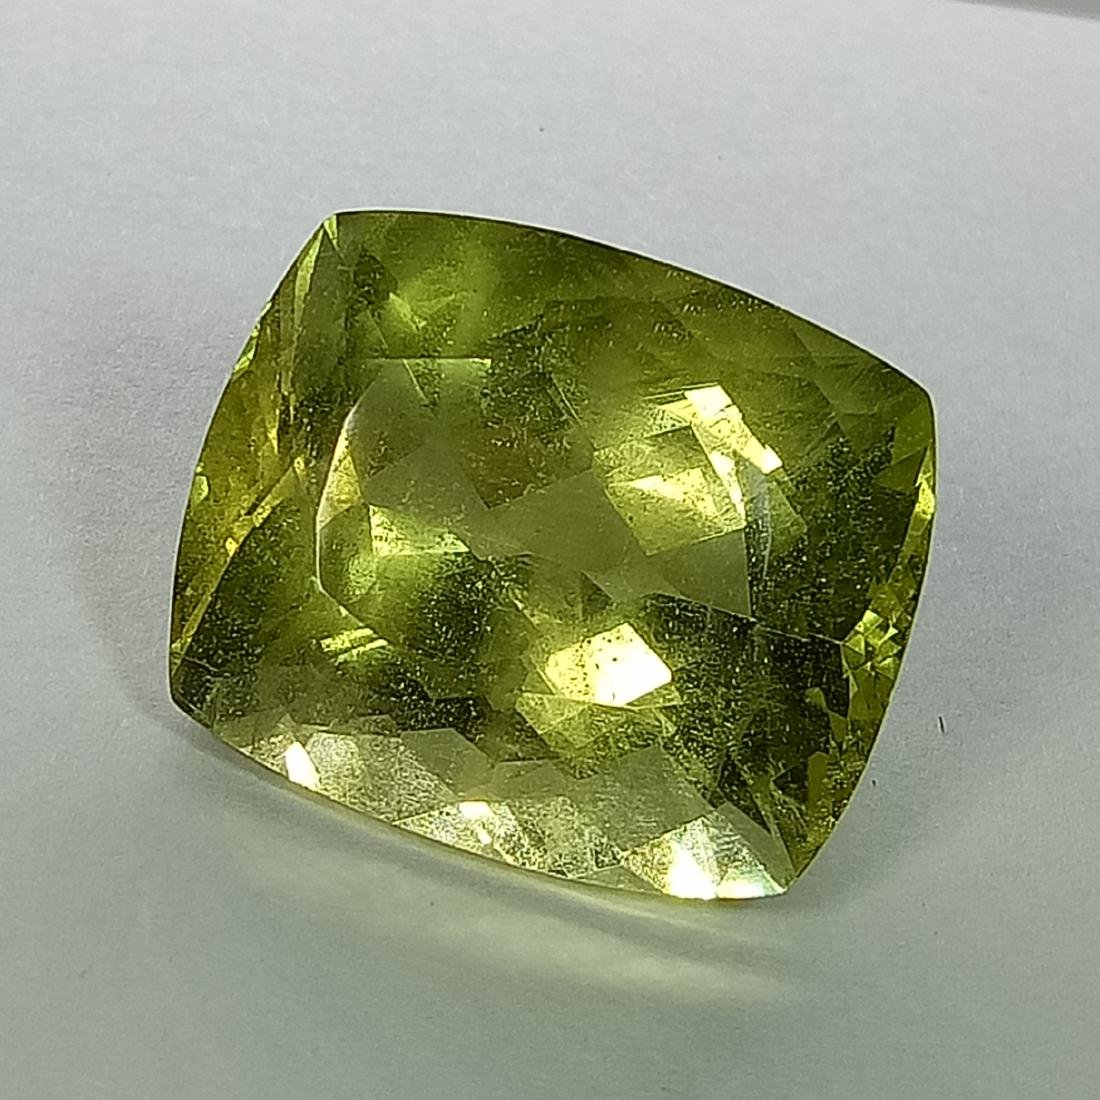 Yellow Beryl - 22.37 ct